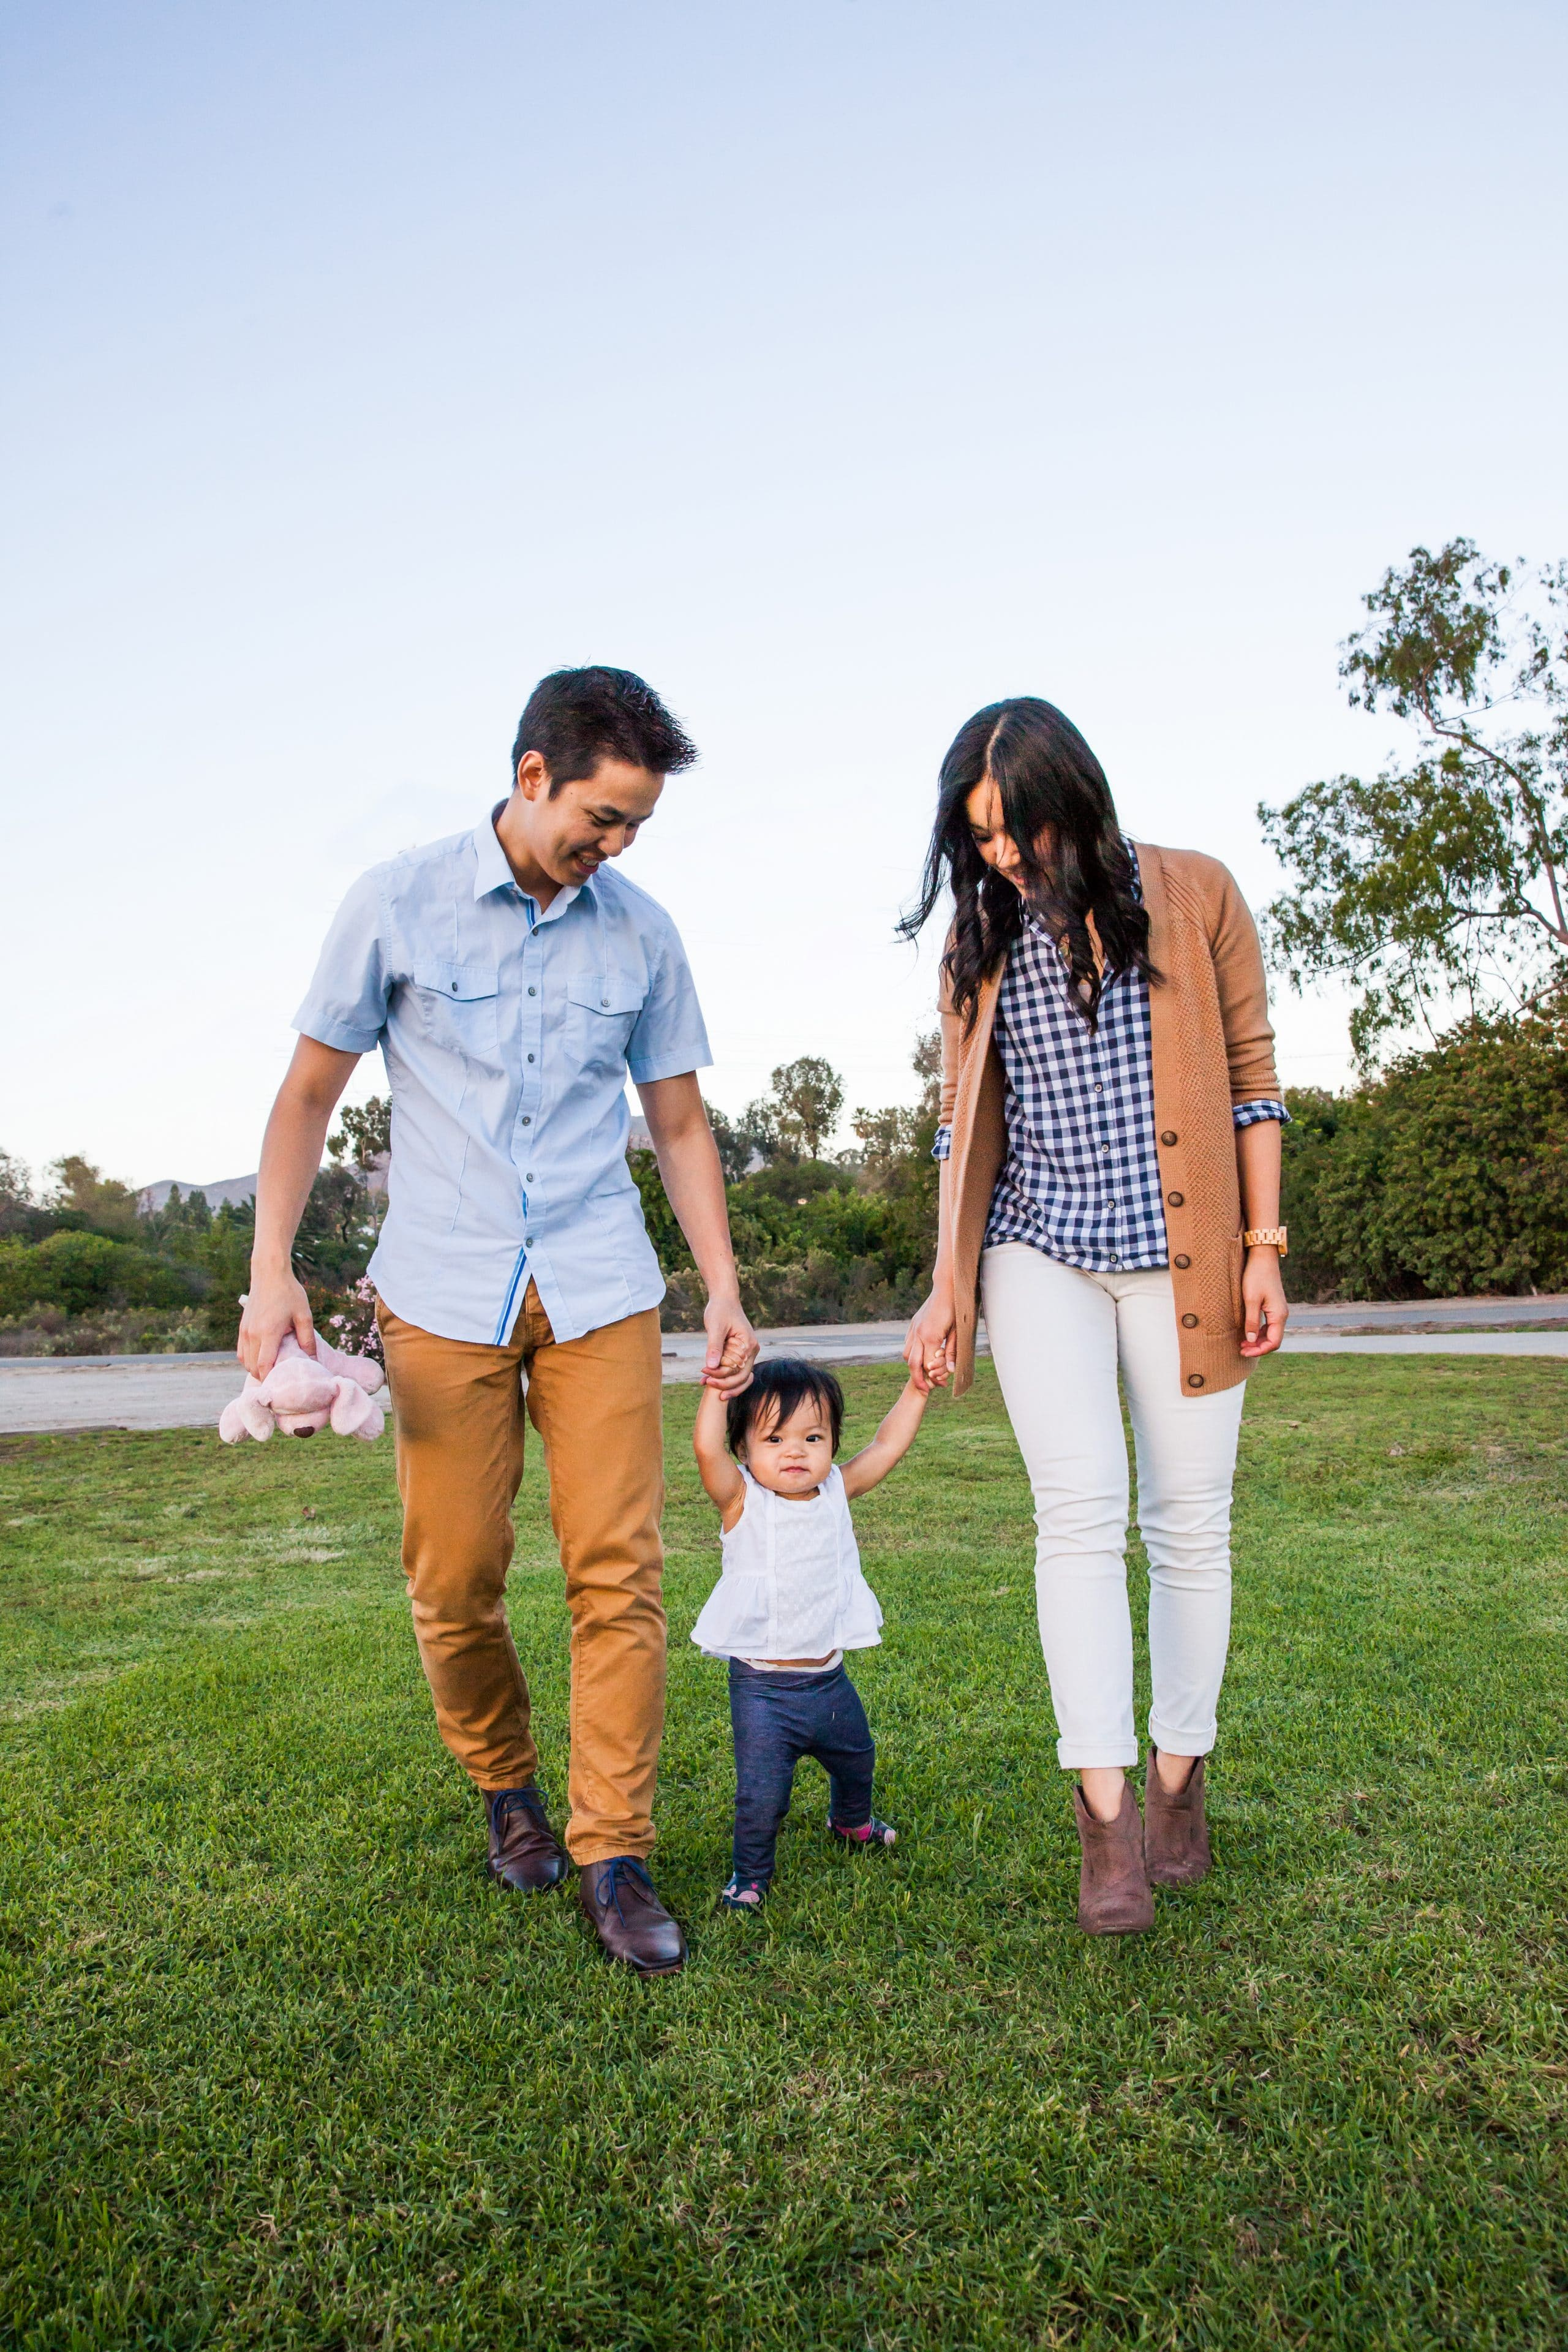 How to Choose Outfits for Family Pictures - Coordinate Without Being Matchy